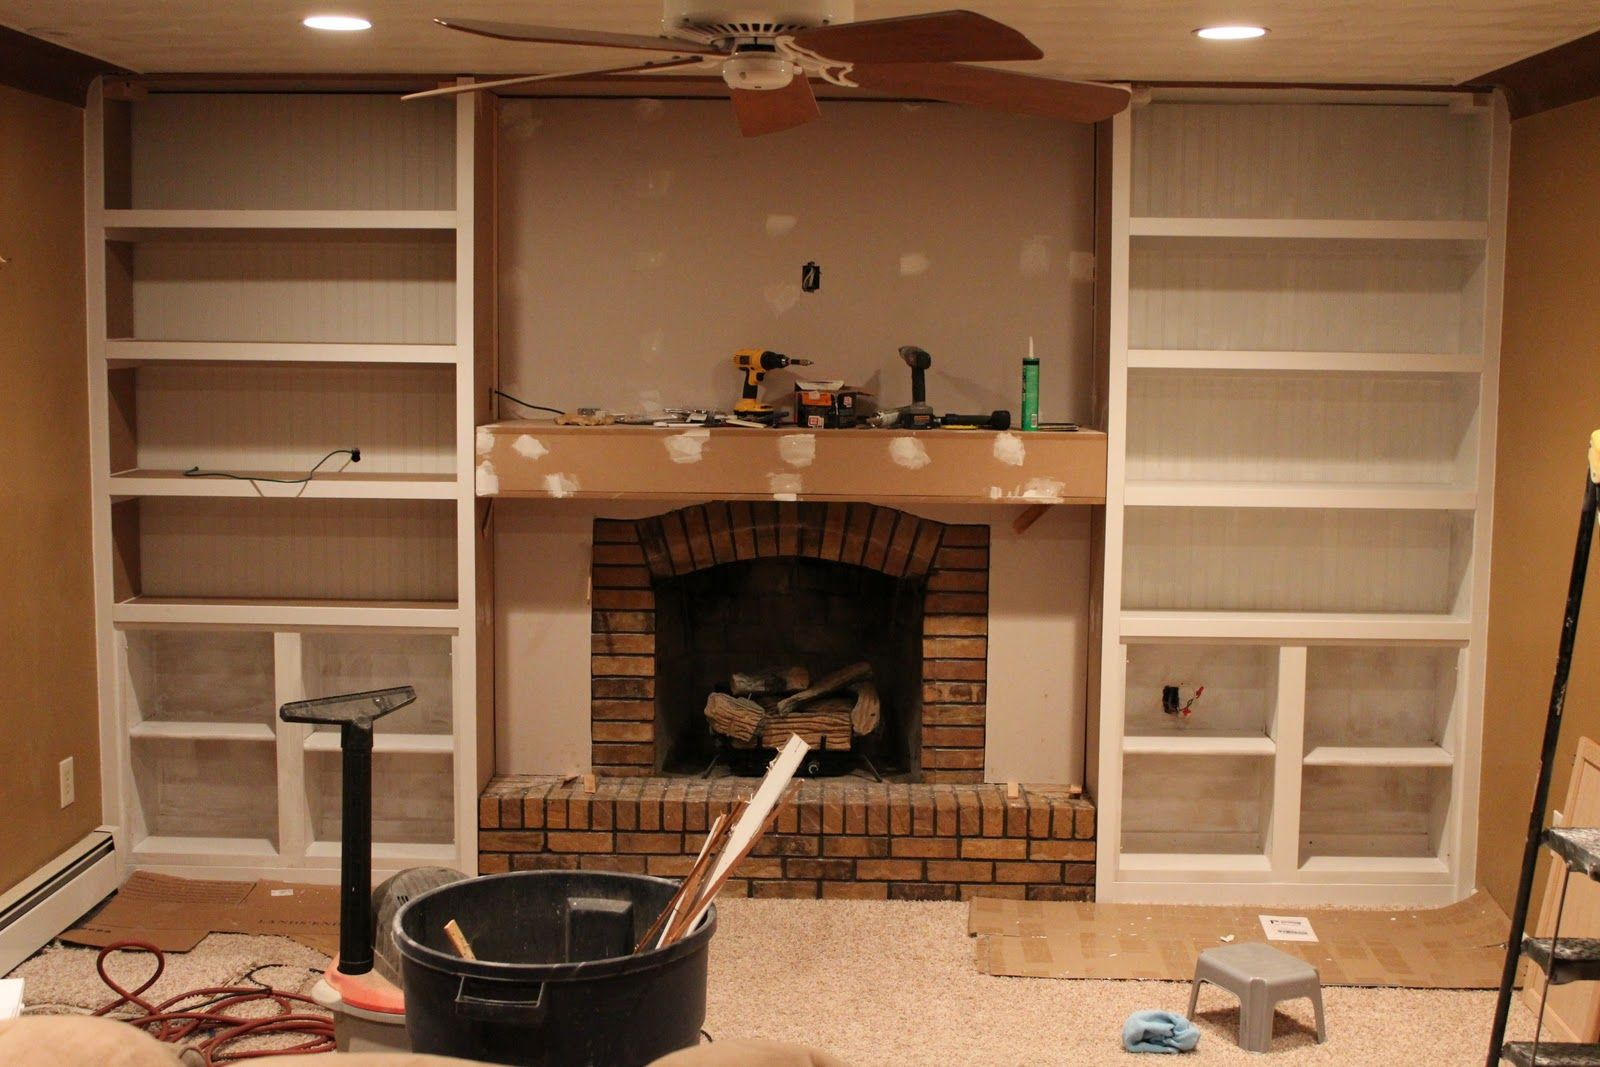 How To Build Shelves Around Fireplace Between The Shelves We Also Used Dry Wall To Fram Diy Fireplace Makeover